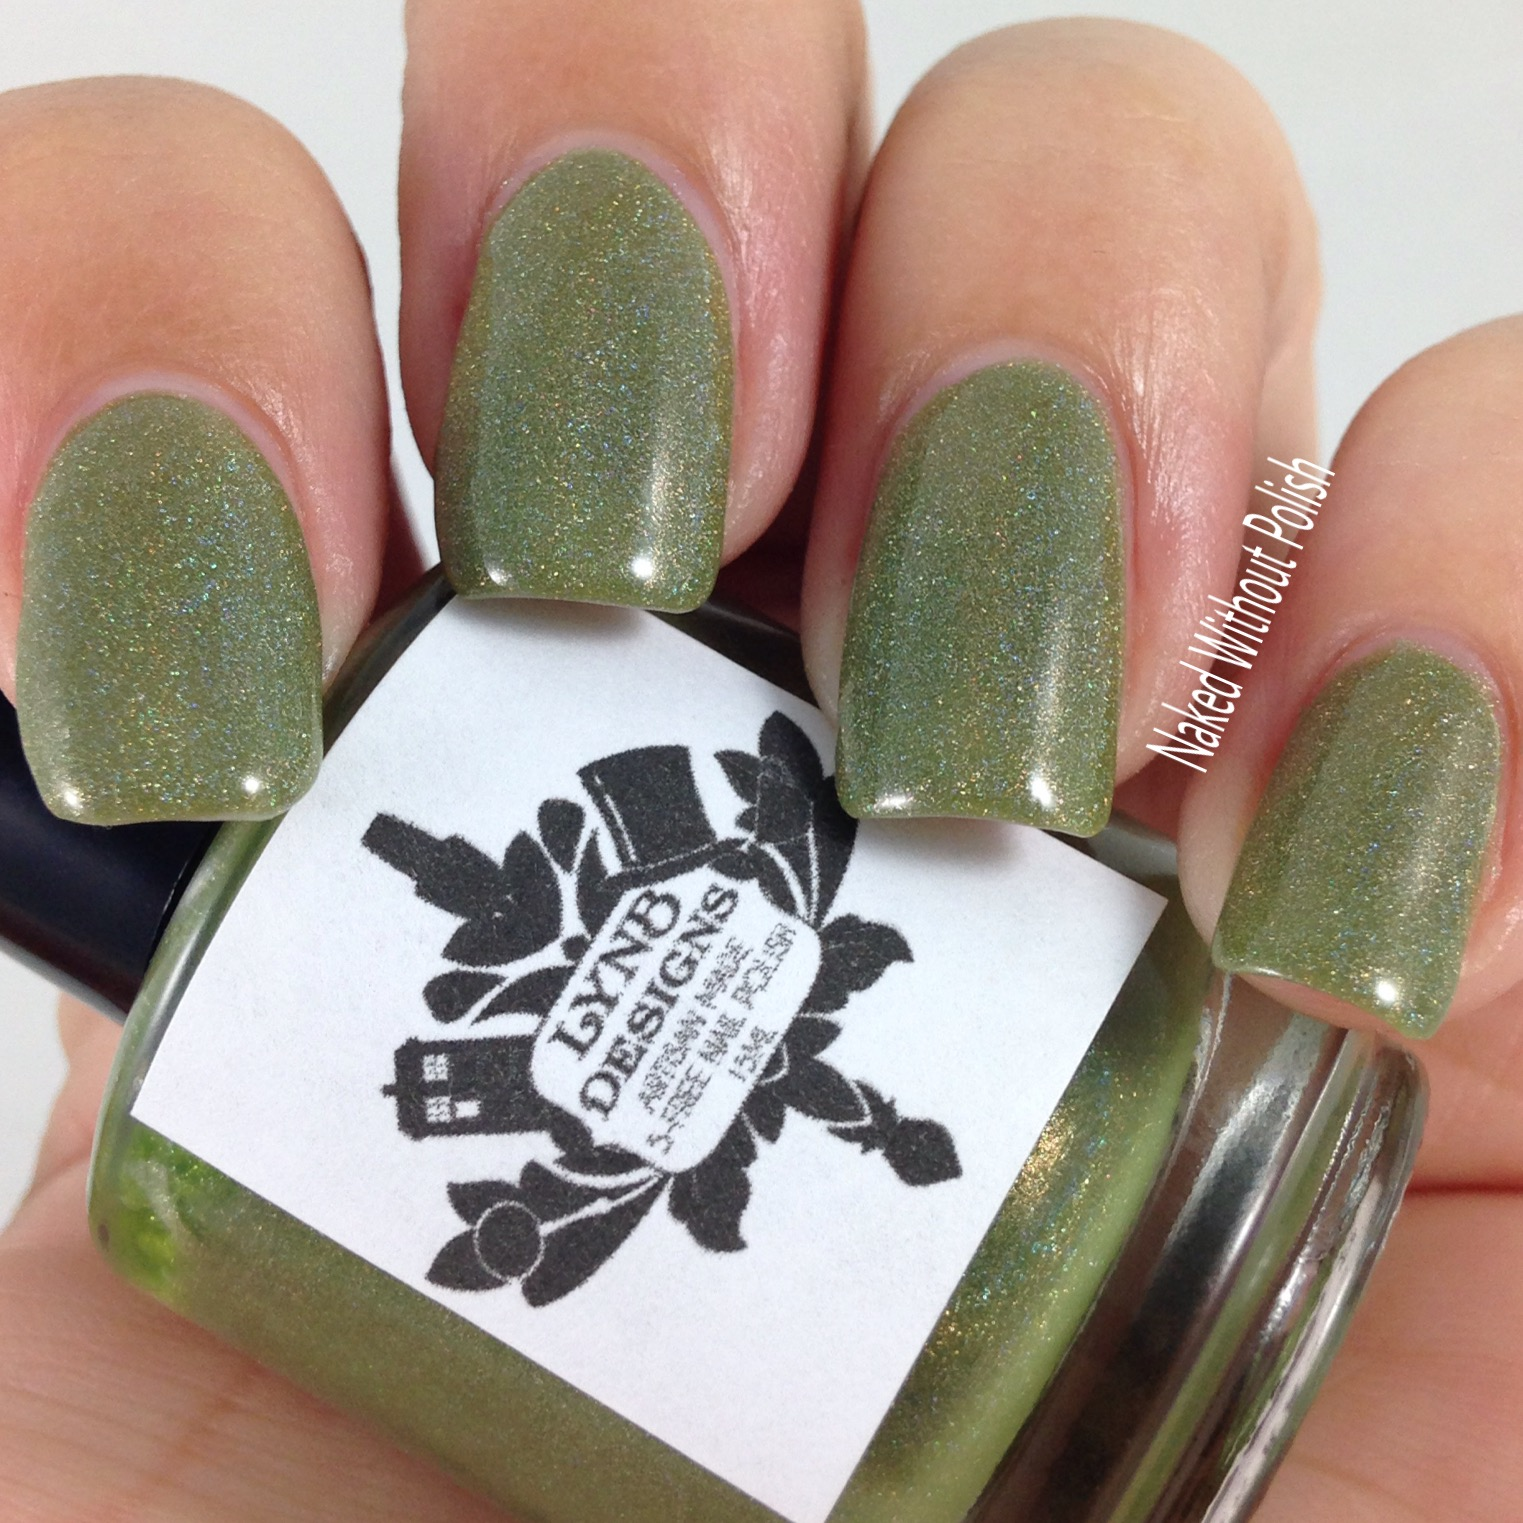 LynBDesigns-Why-Not-Take-Olive-Me-6